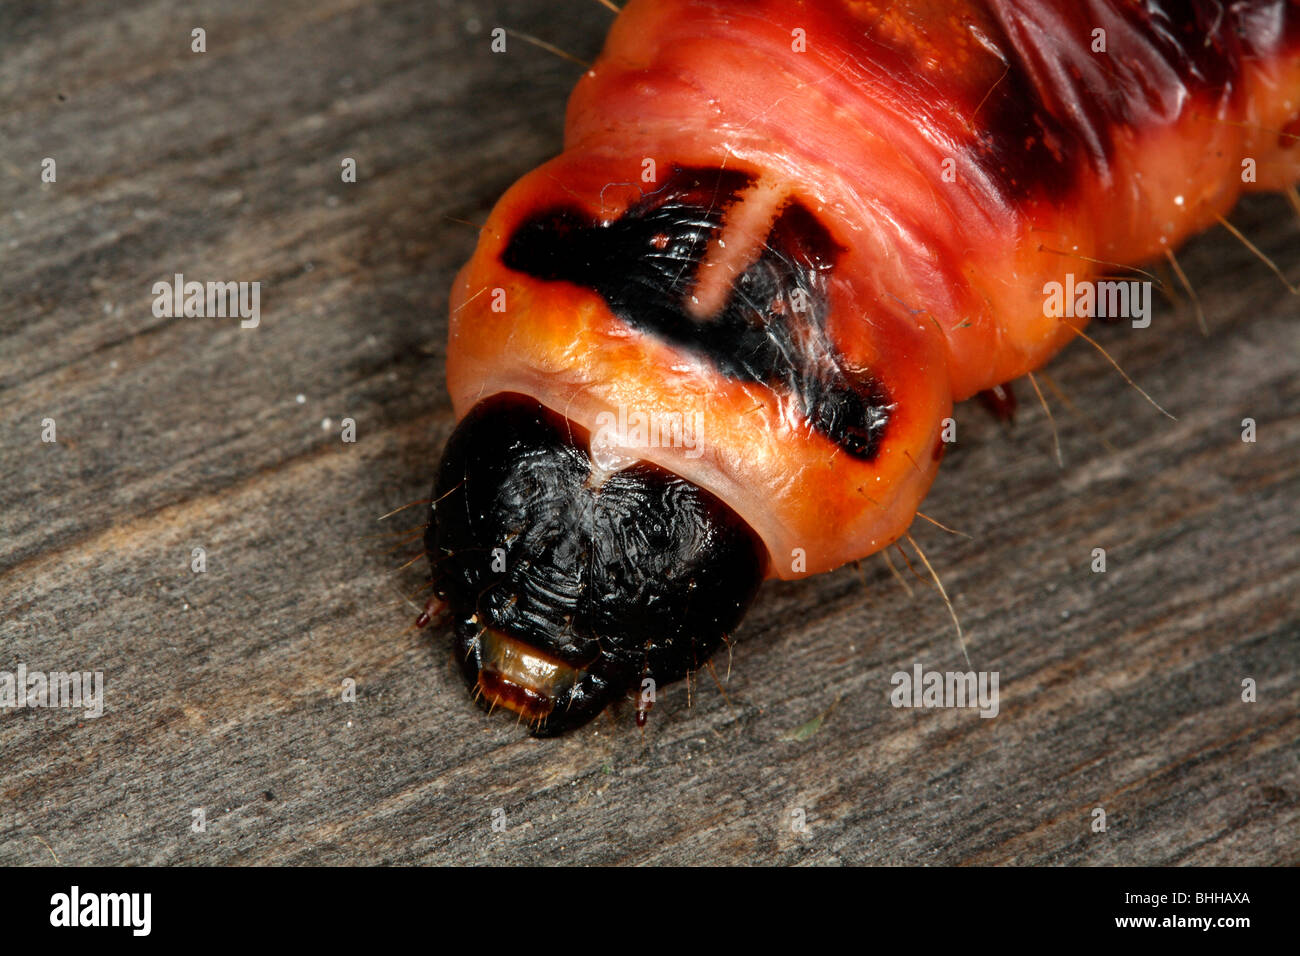 Goat Moth caterpillar, close-up, Sweden. - Stock Image